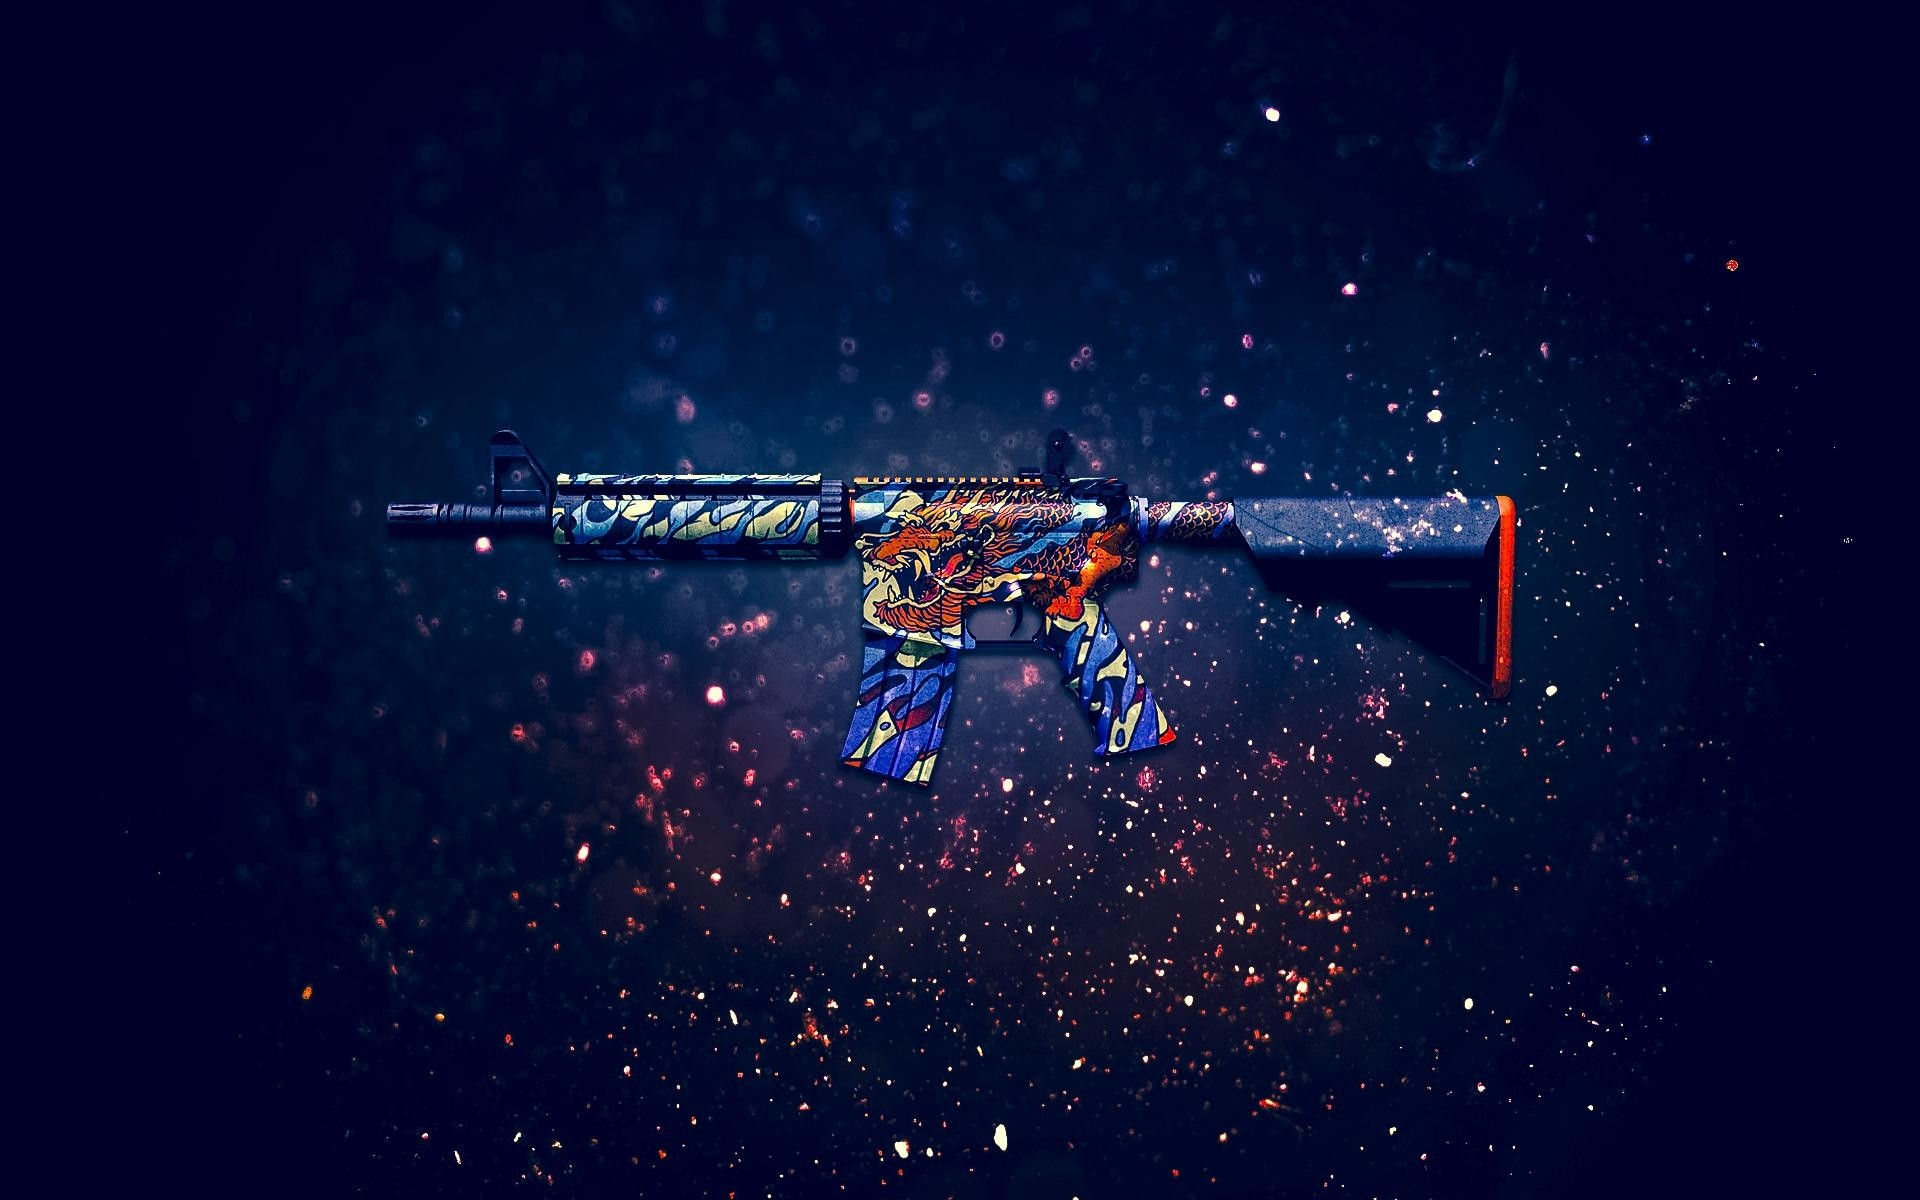 1920x1200 AWP Dragon Lore Sniper Rifle Counter Strike Global Offensive Weapon Skin   | Надо купить | Pinterest | Weapons, Dragons and Gaming